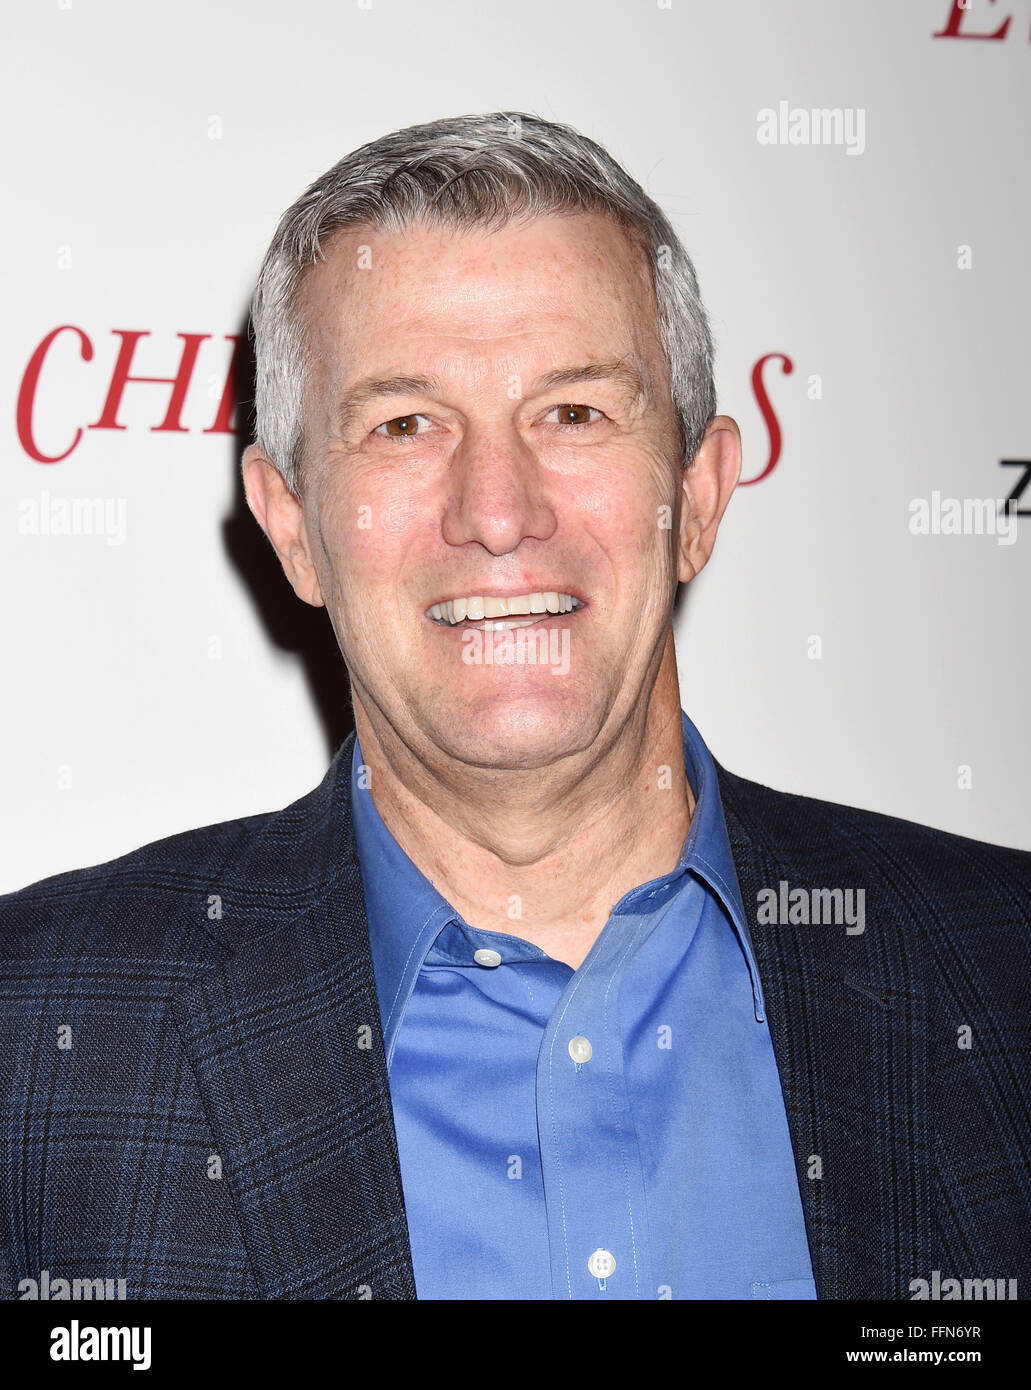 Writer/director Mitch Davis arrives at the premiere of Unstuck's 'Christmas Eve' at the ArcLight Hollywood - Stock Image